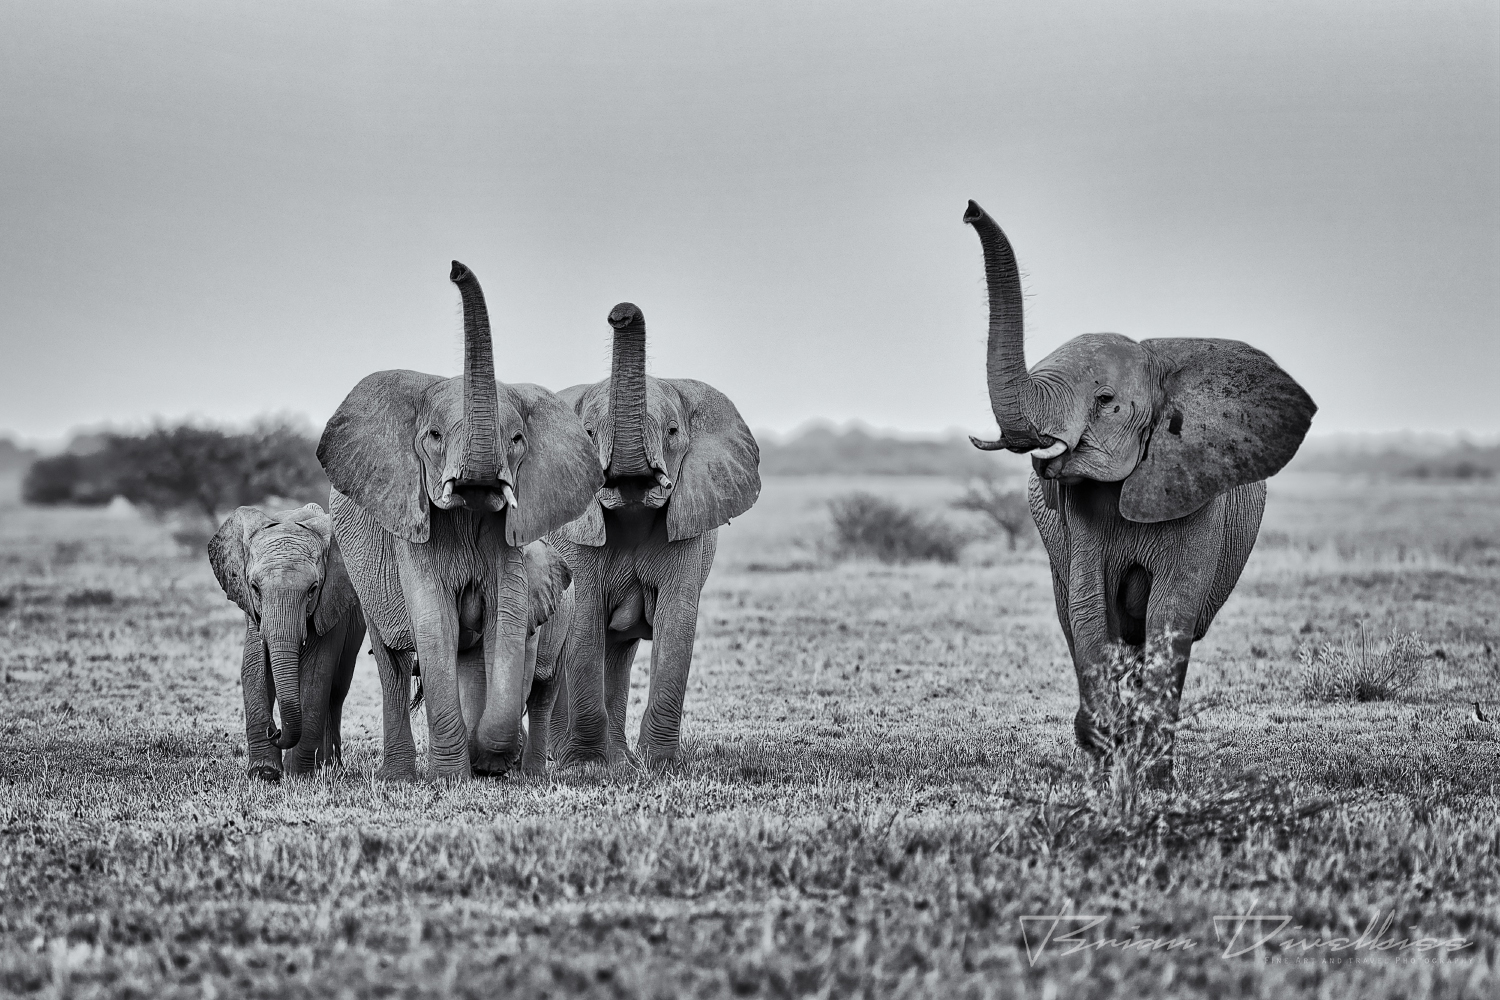 A herding group of elephants walking and bugling.